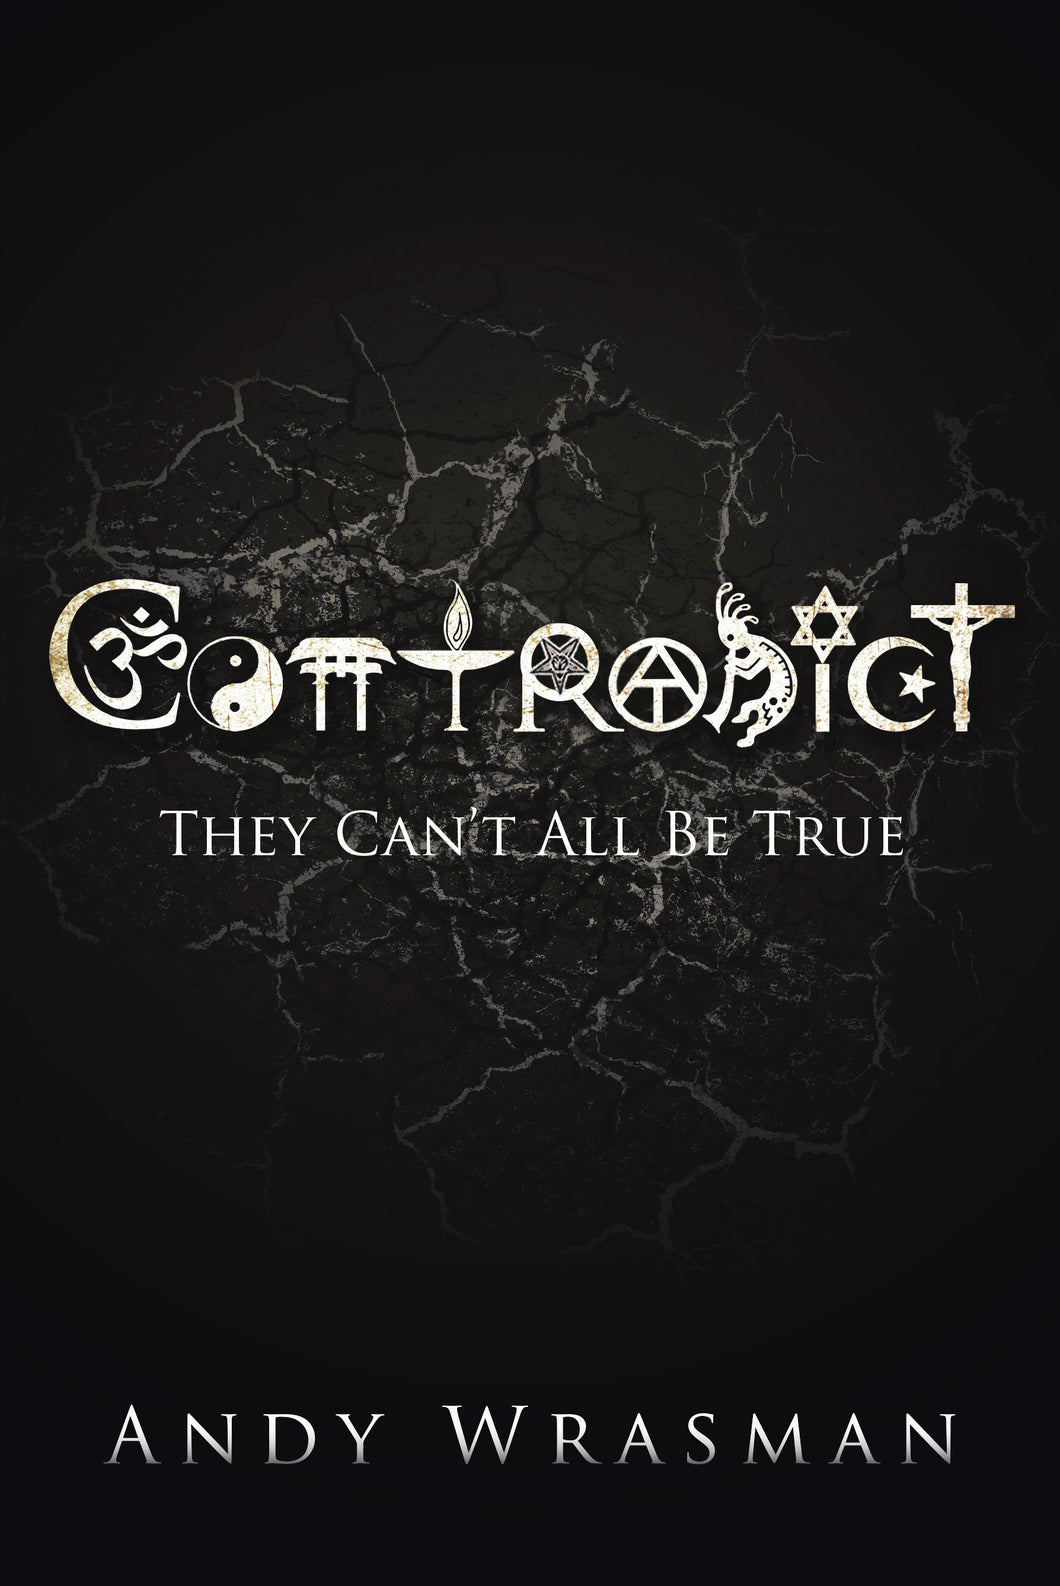 Contradict - They Can't All Be True (Signed Copy with 2 Contradict Stickers)